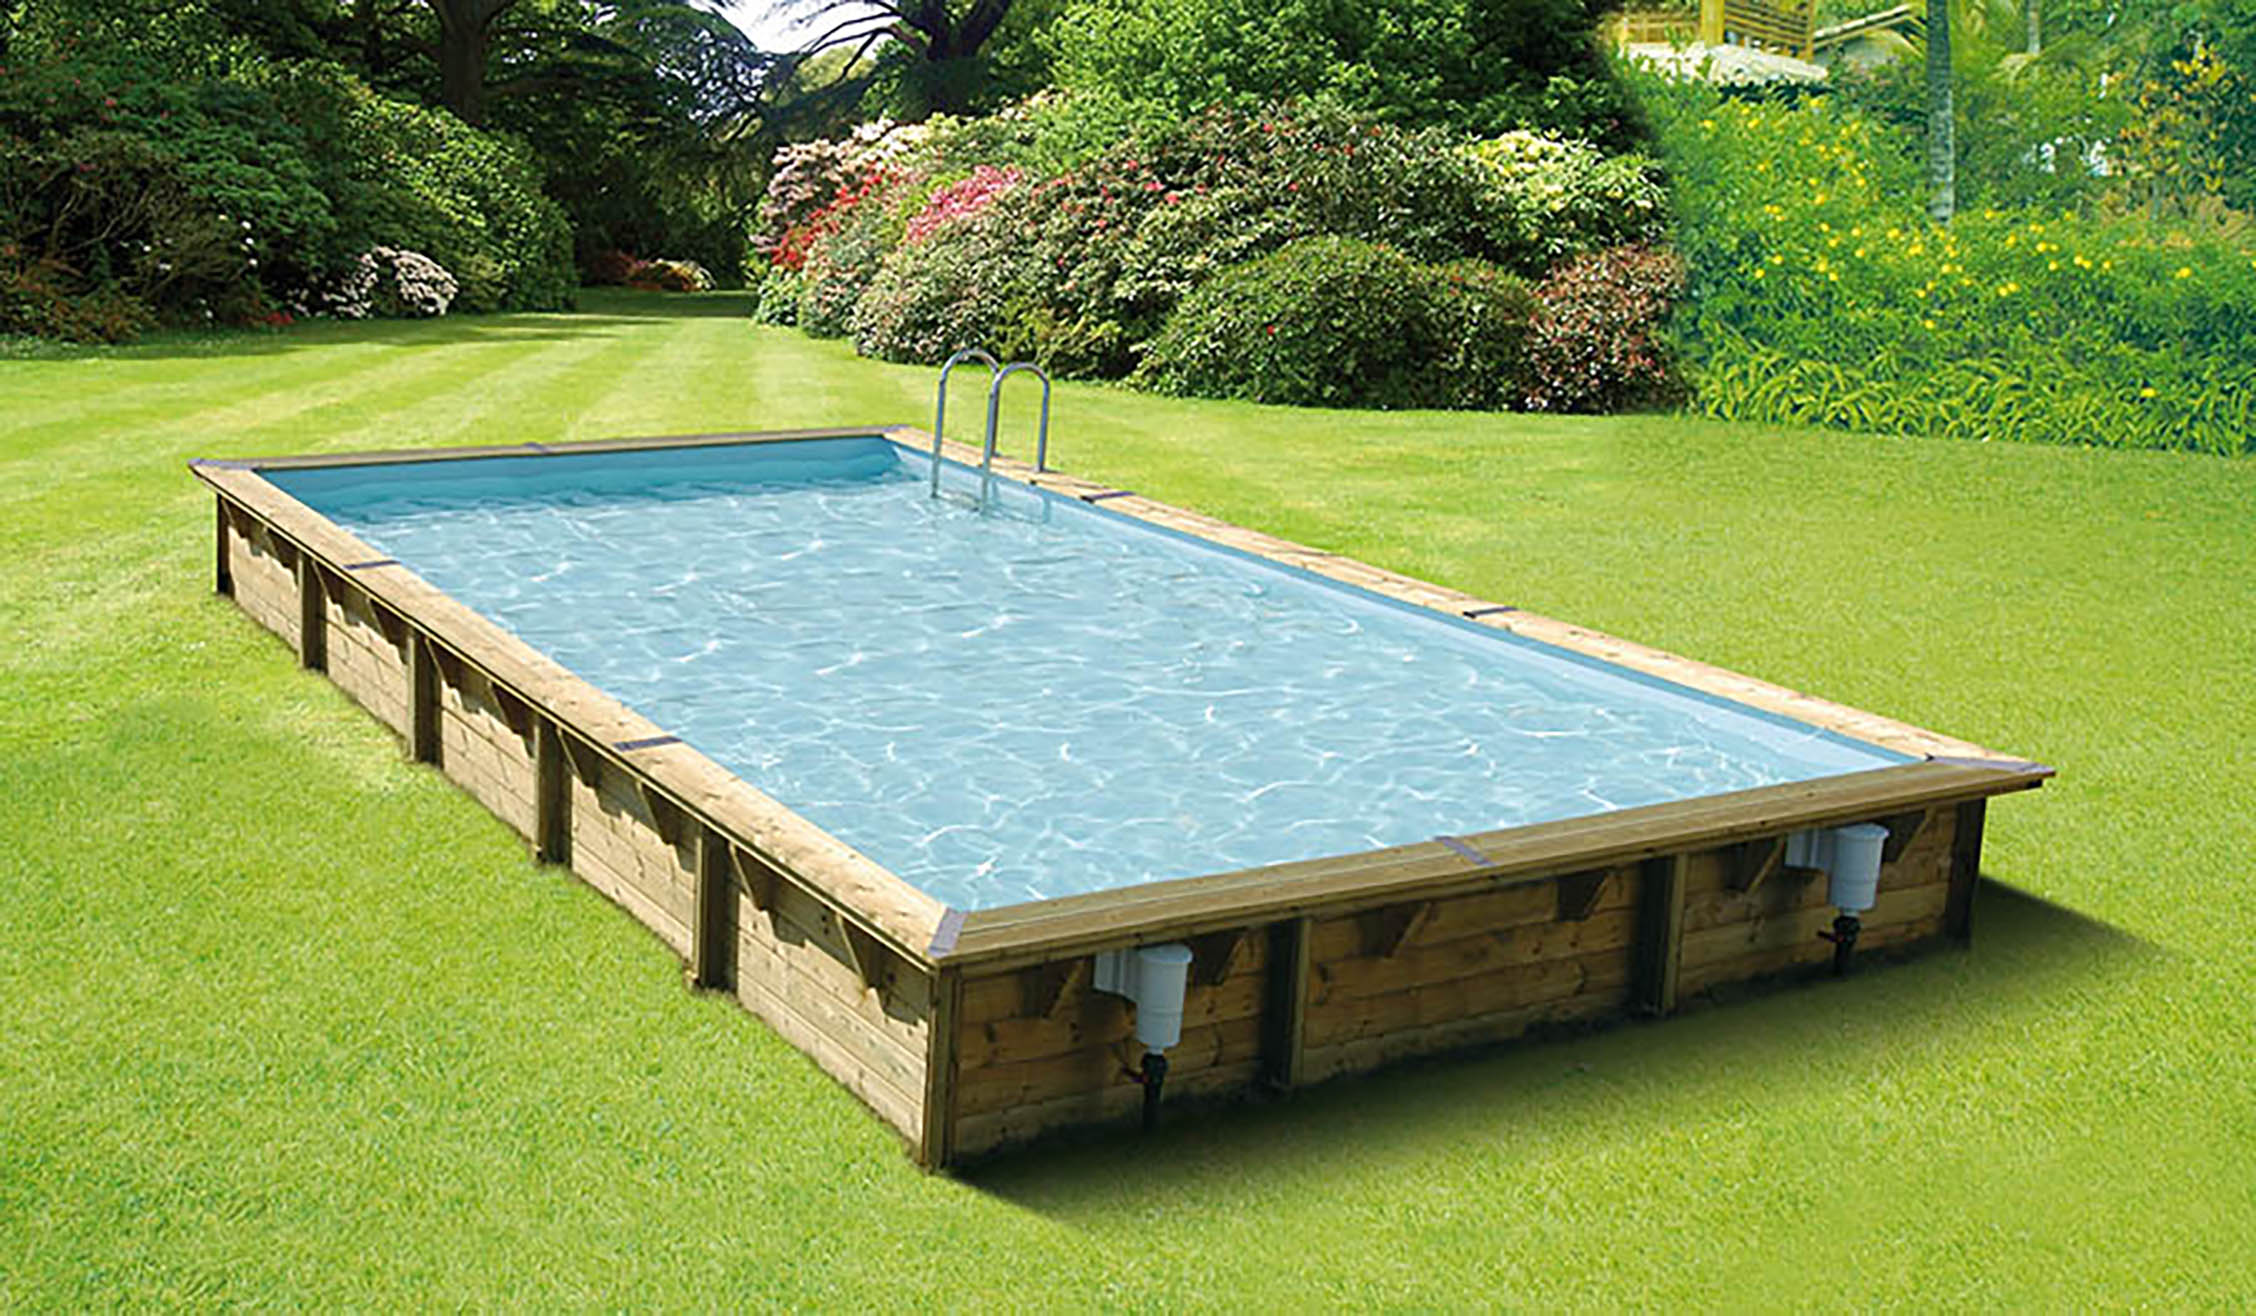 Amenagement piscine bois hors sol id es for Piscine en bois